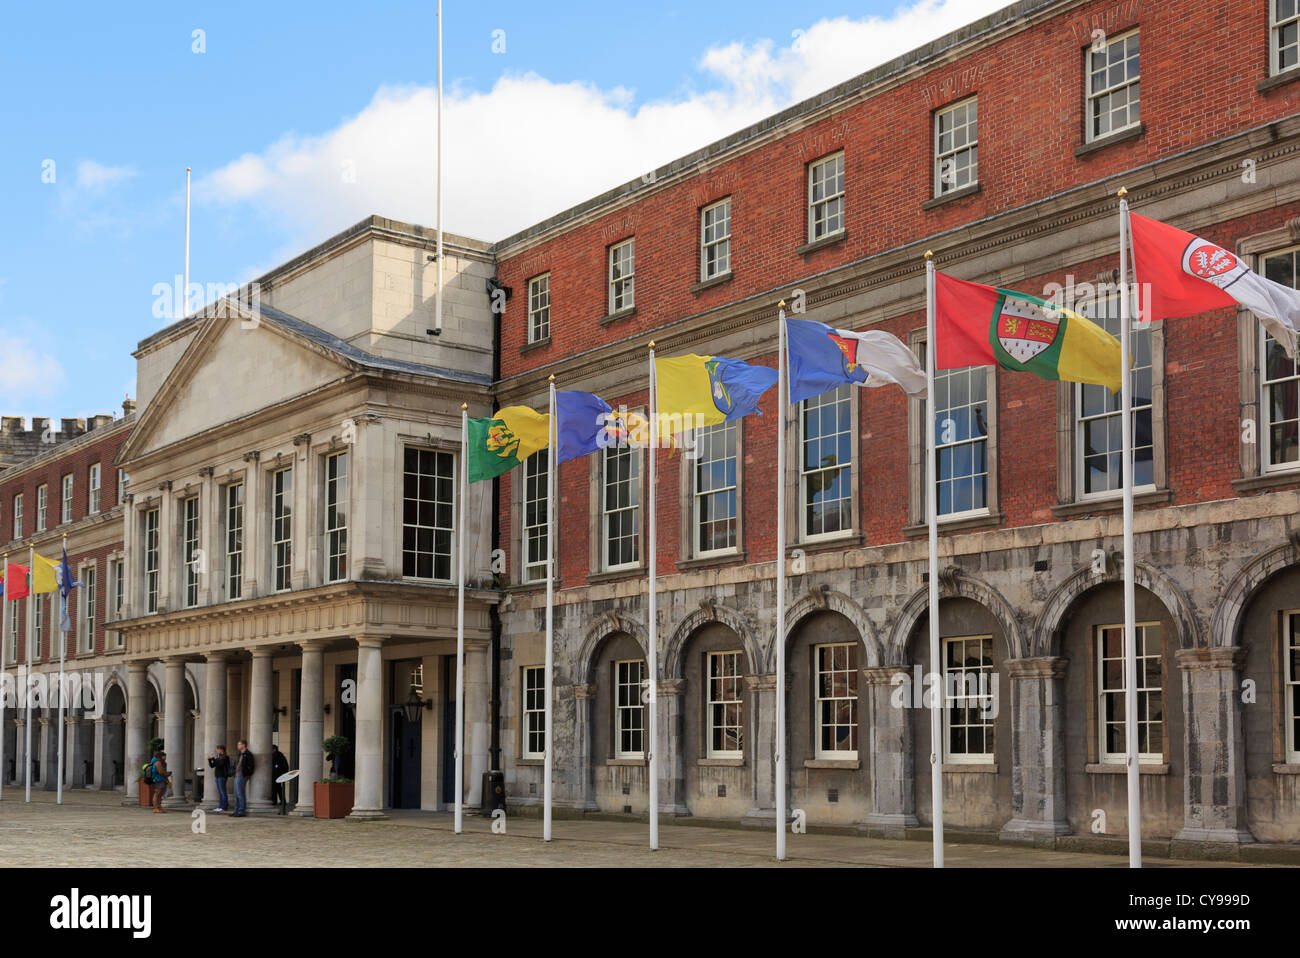 Dublin, Republic of Ireland, Eire. State apartments and international flags in Dublin castle Upper Yard courtyard - Stock Image